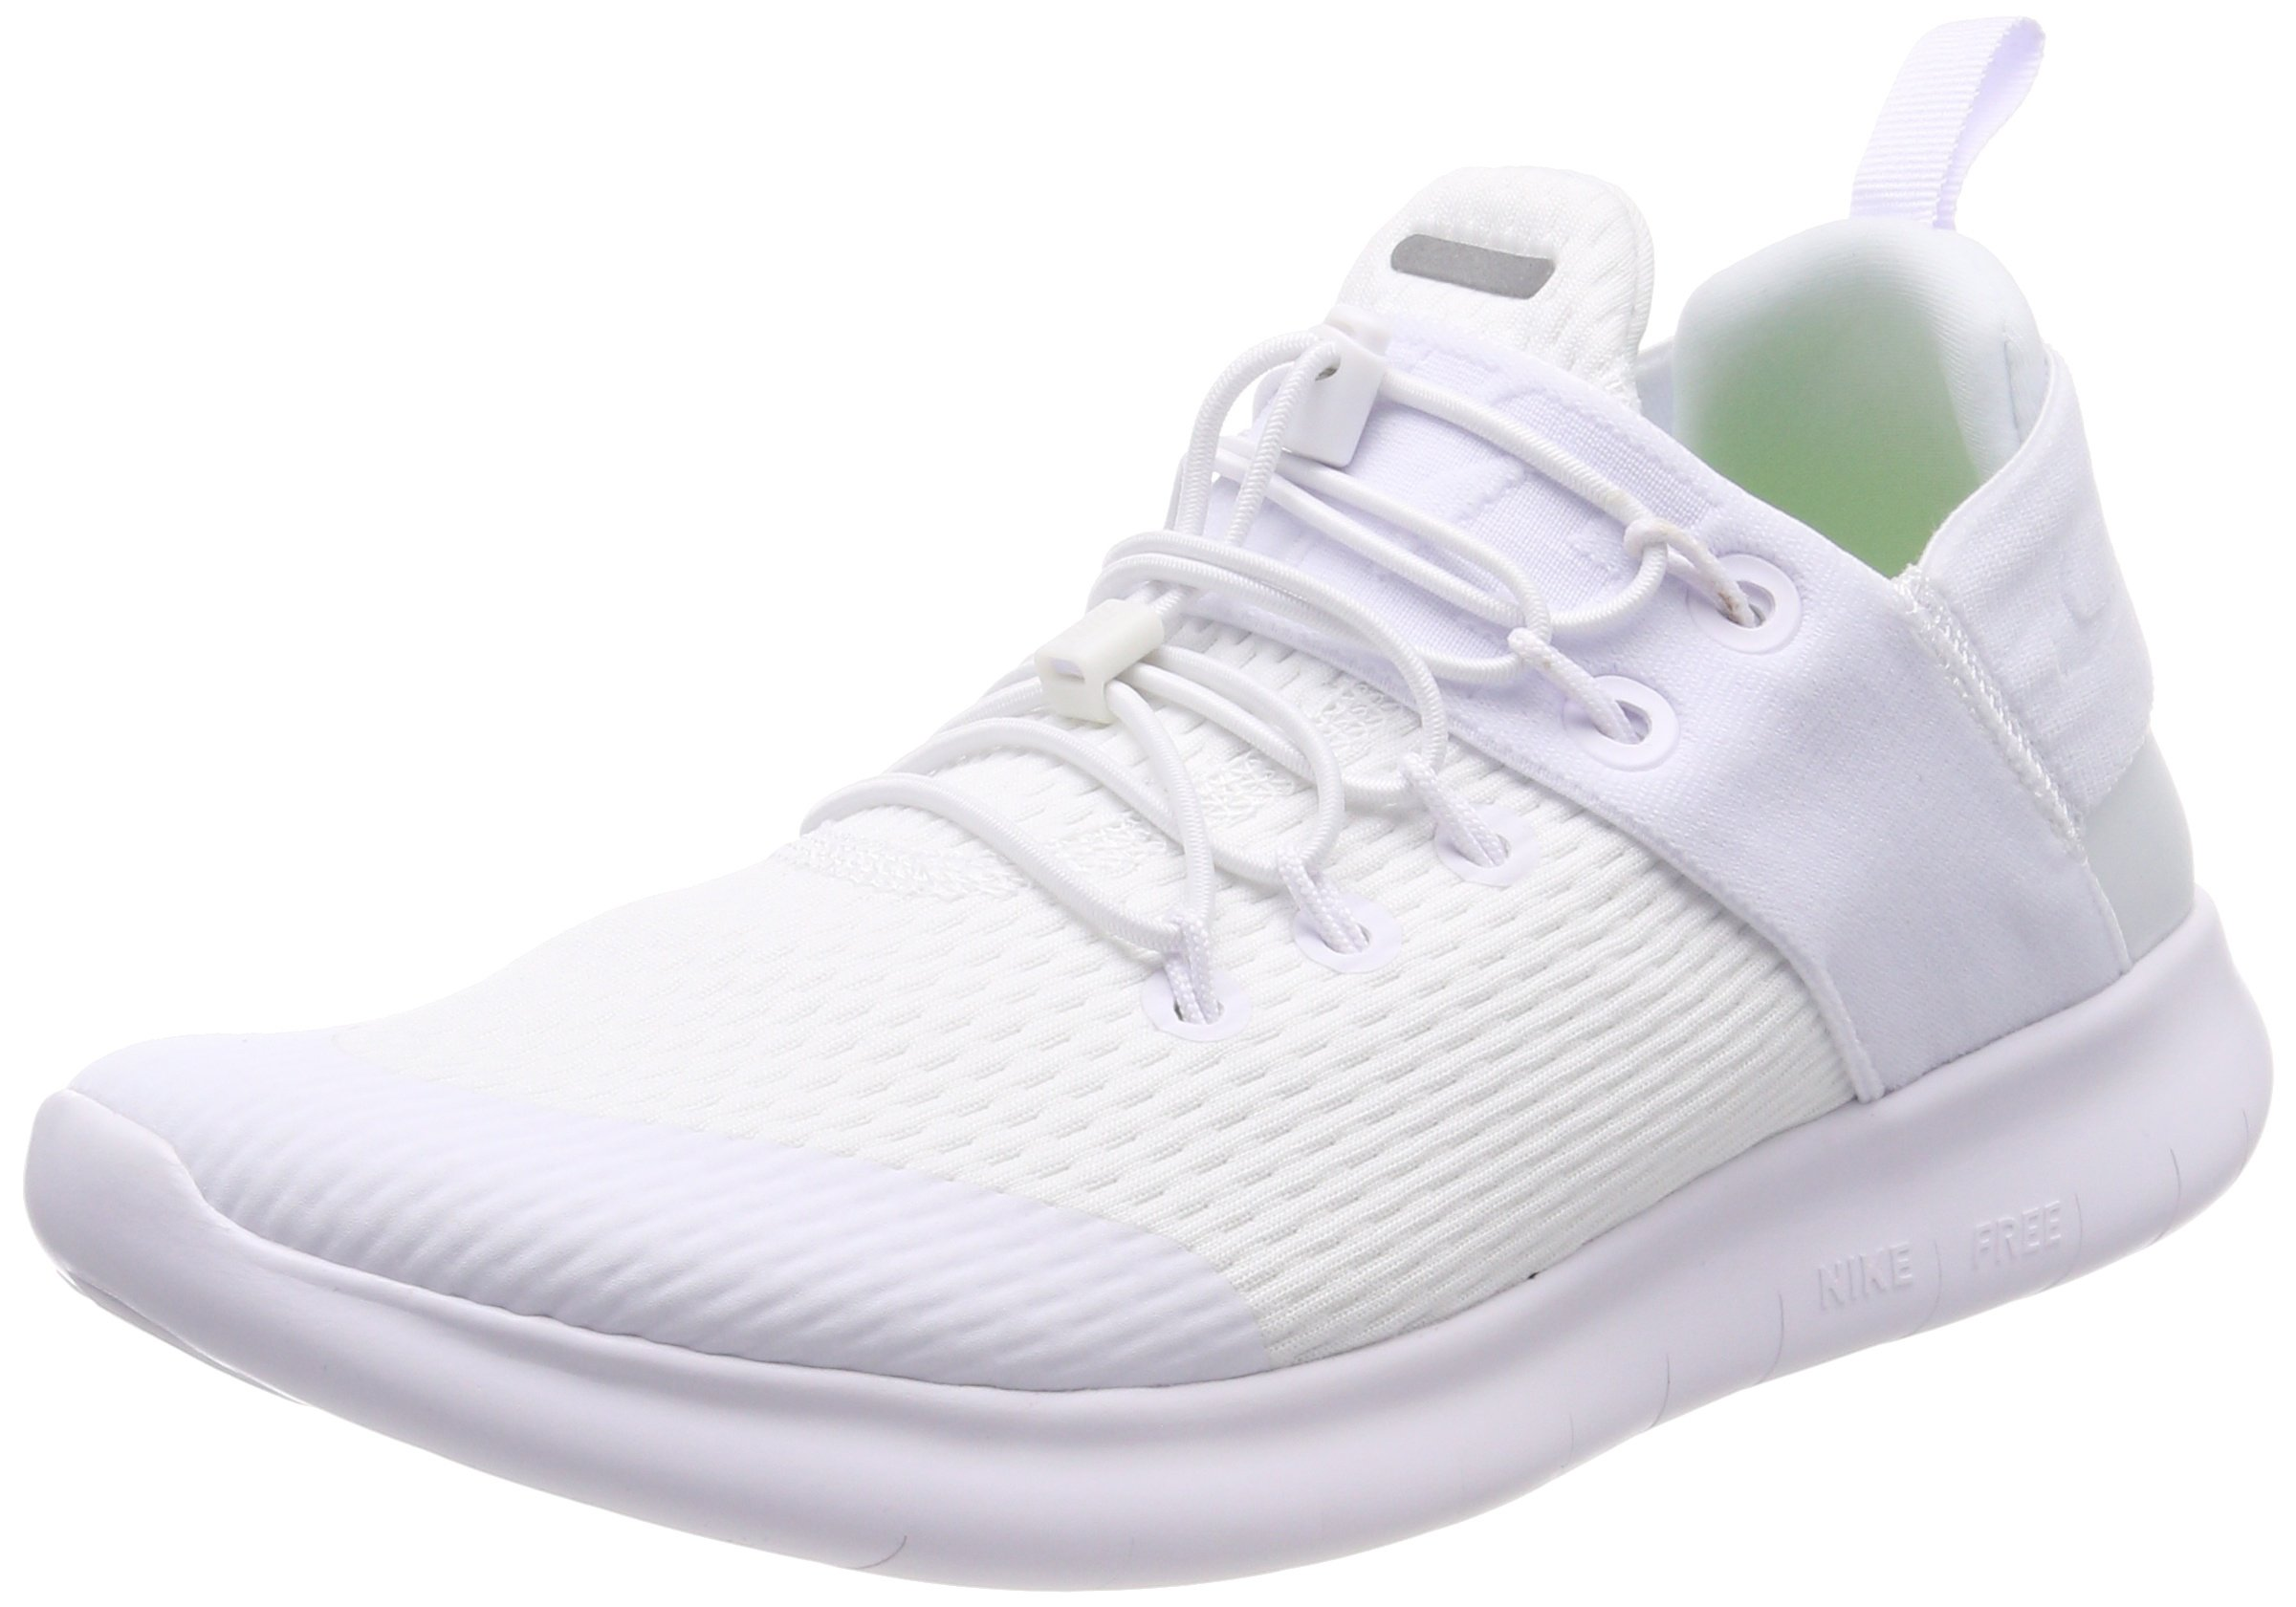 low priced 90542 5c545 Nike Mens Free RN Commuter 2017 Running Shoes White White 880841-100 Size  9.5